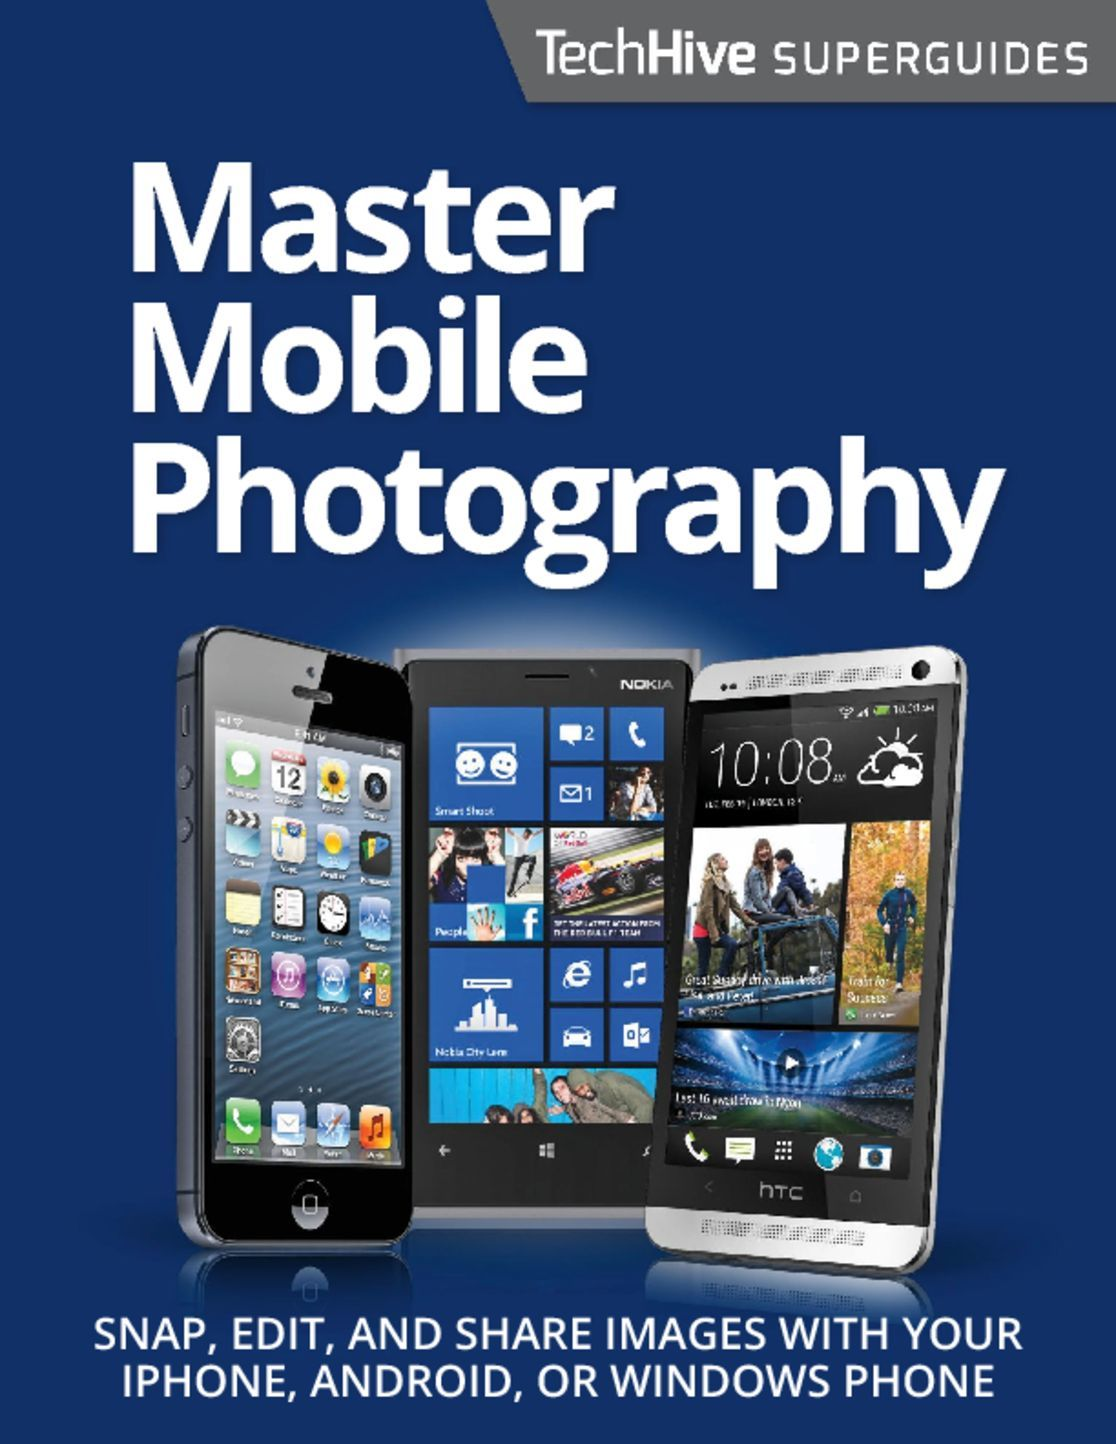 Master Mobile Photography Superguide Digital